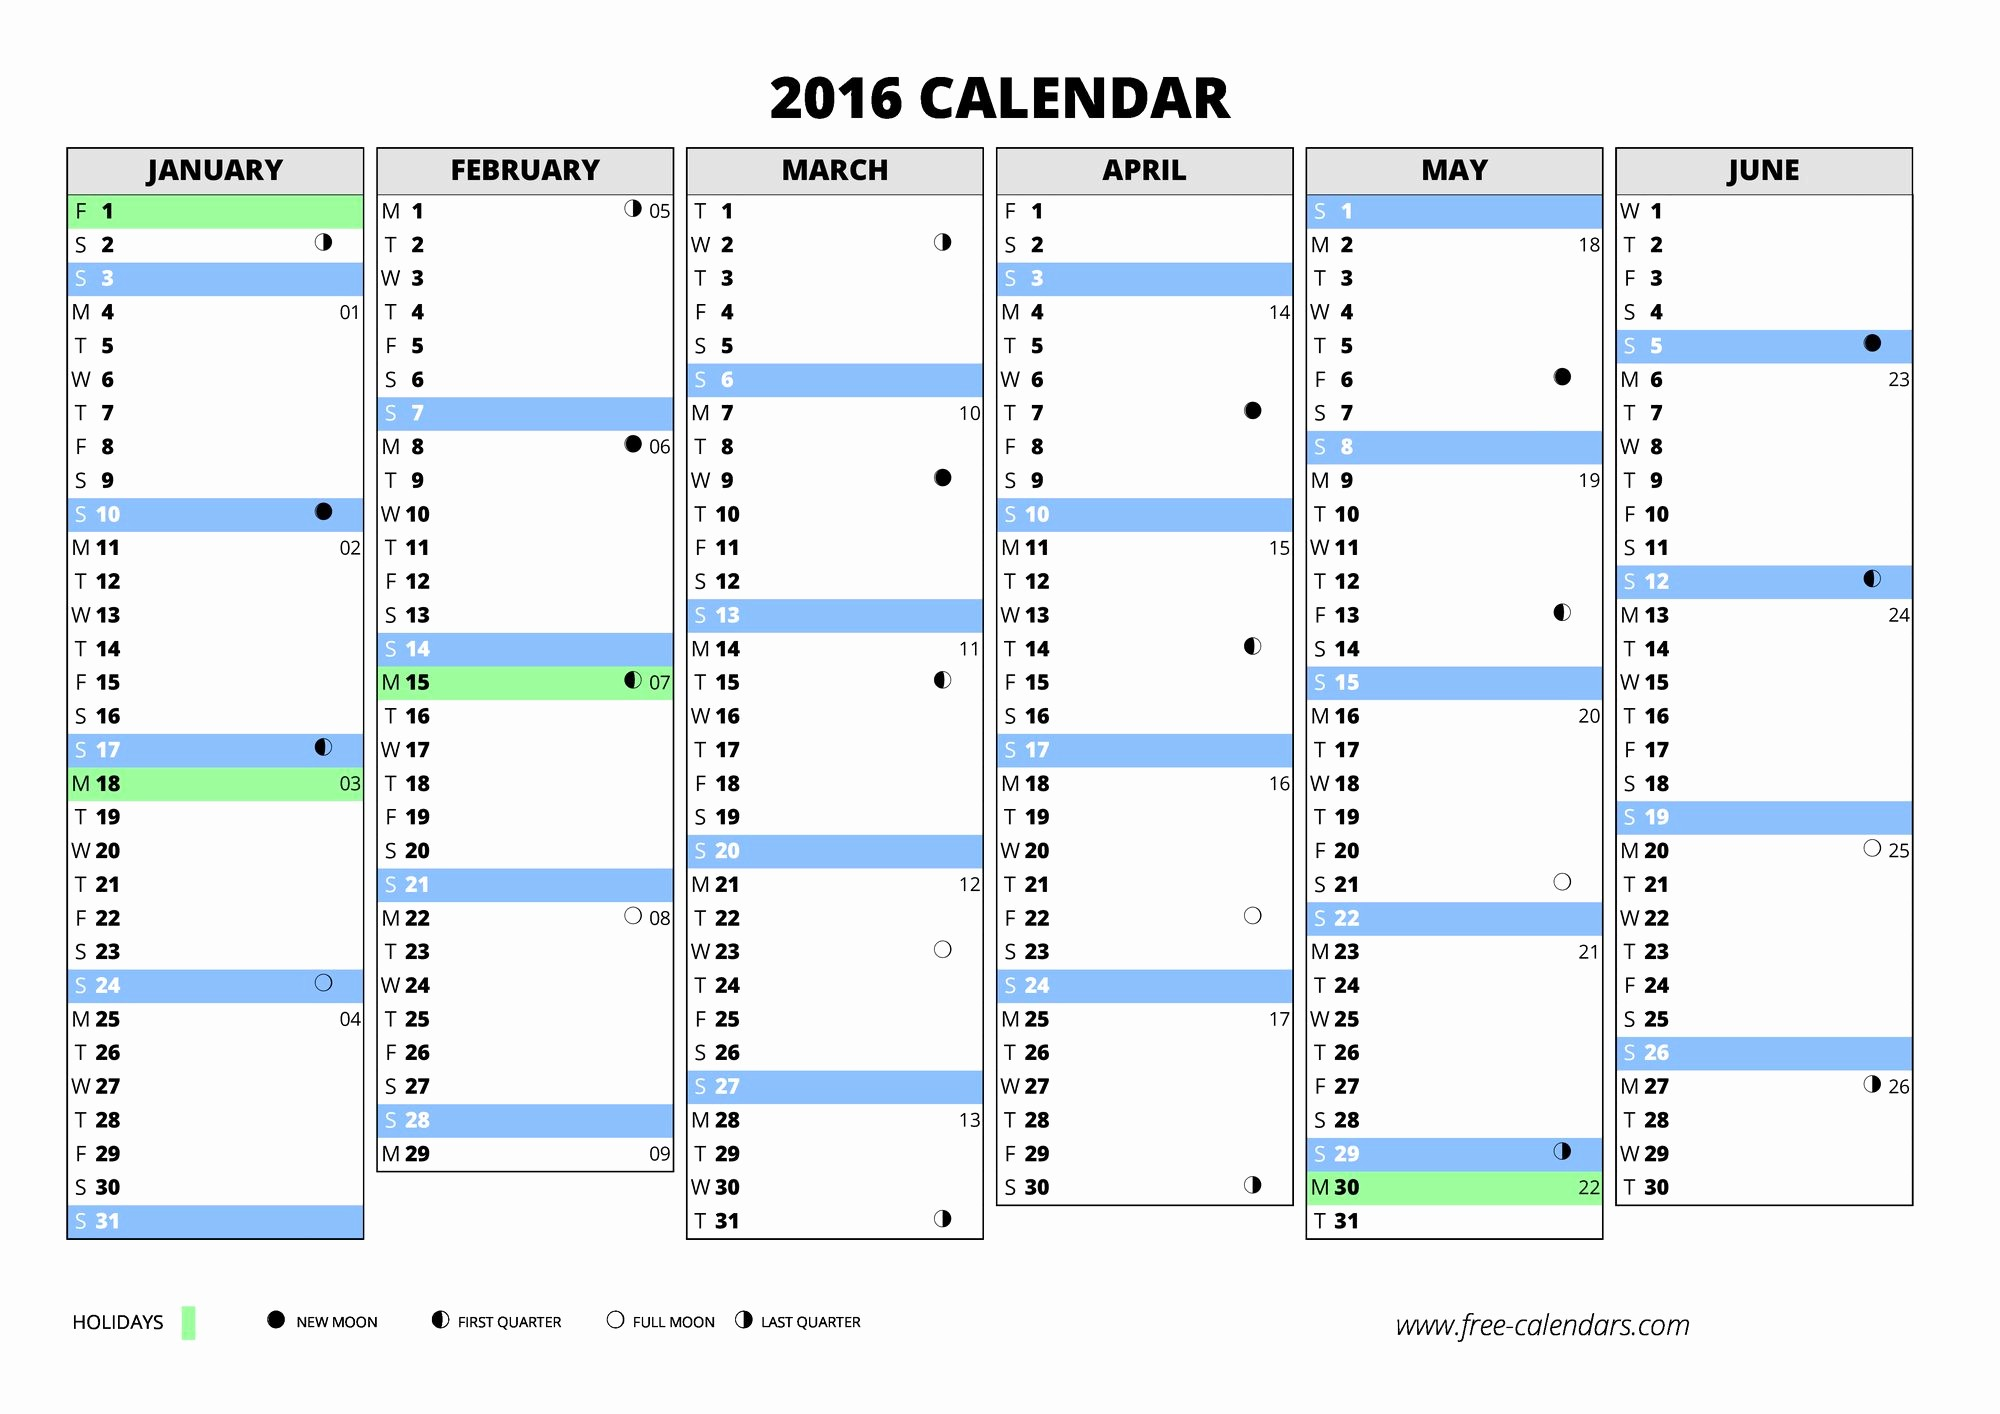 Excel 2016 Calendar with Holidays Unique 2016 Calendar ≡ Free Calendars